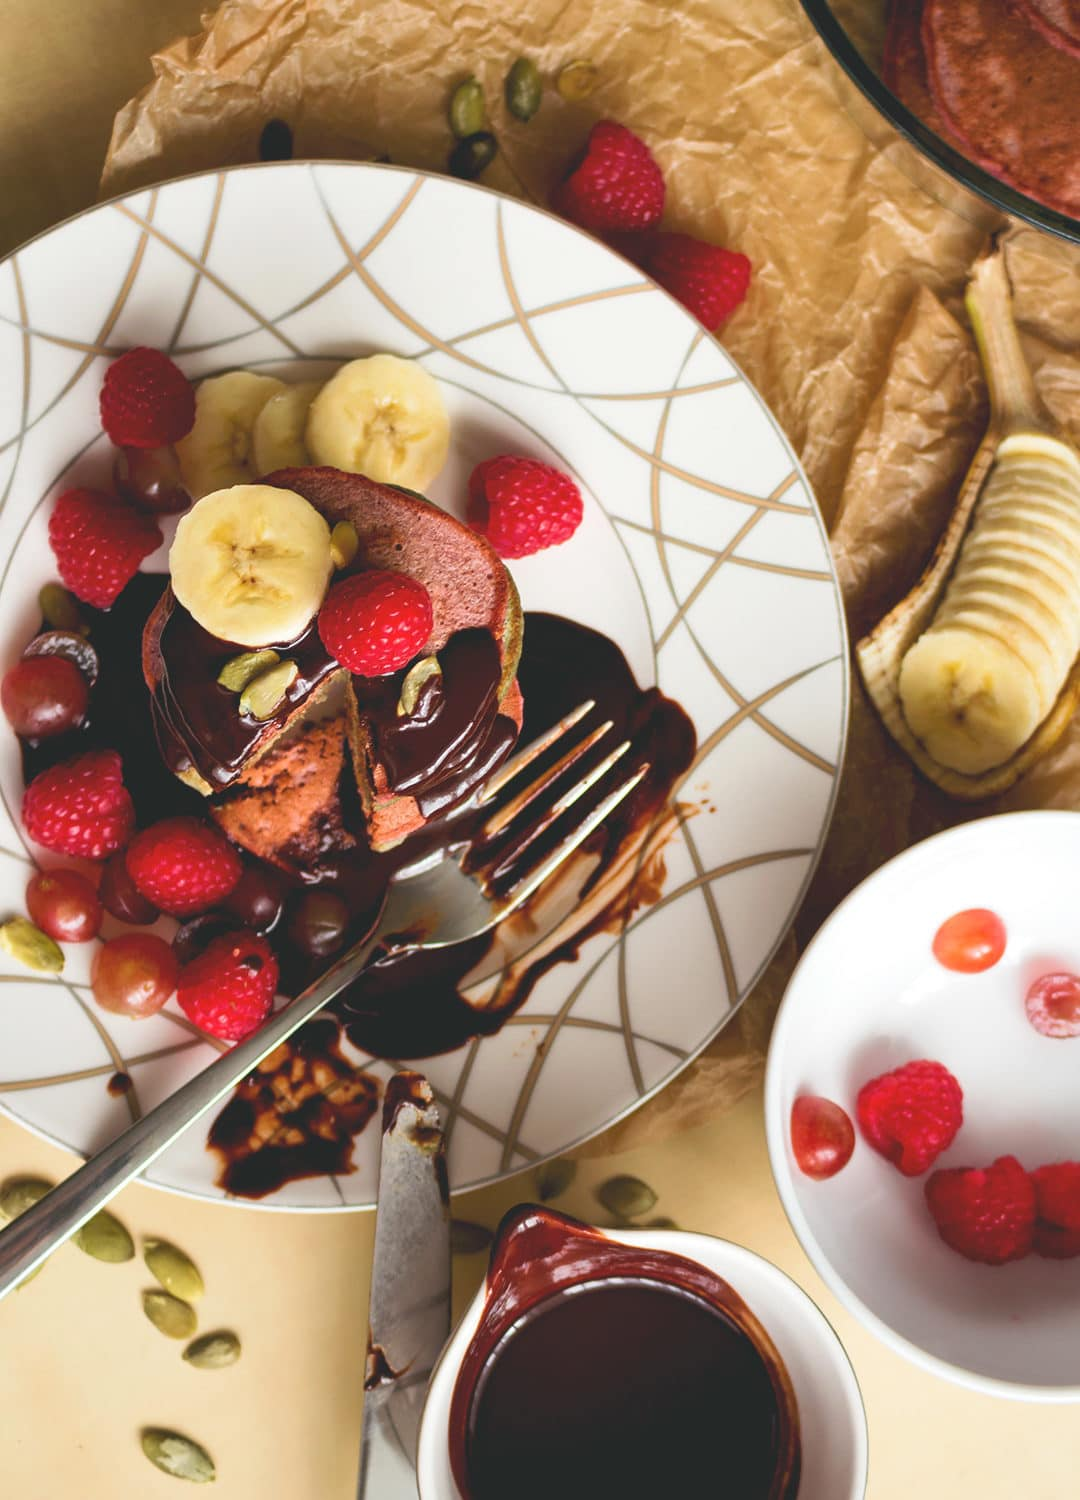 Colorful Pancakes with Chocolate Sauce and Berries - delicious healthy pancake recipe you'll love! Perfect for a family breakfast or Sunday brunch! YUM! | thehealthfulideas.com